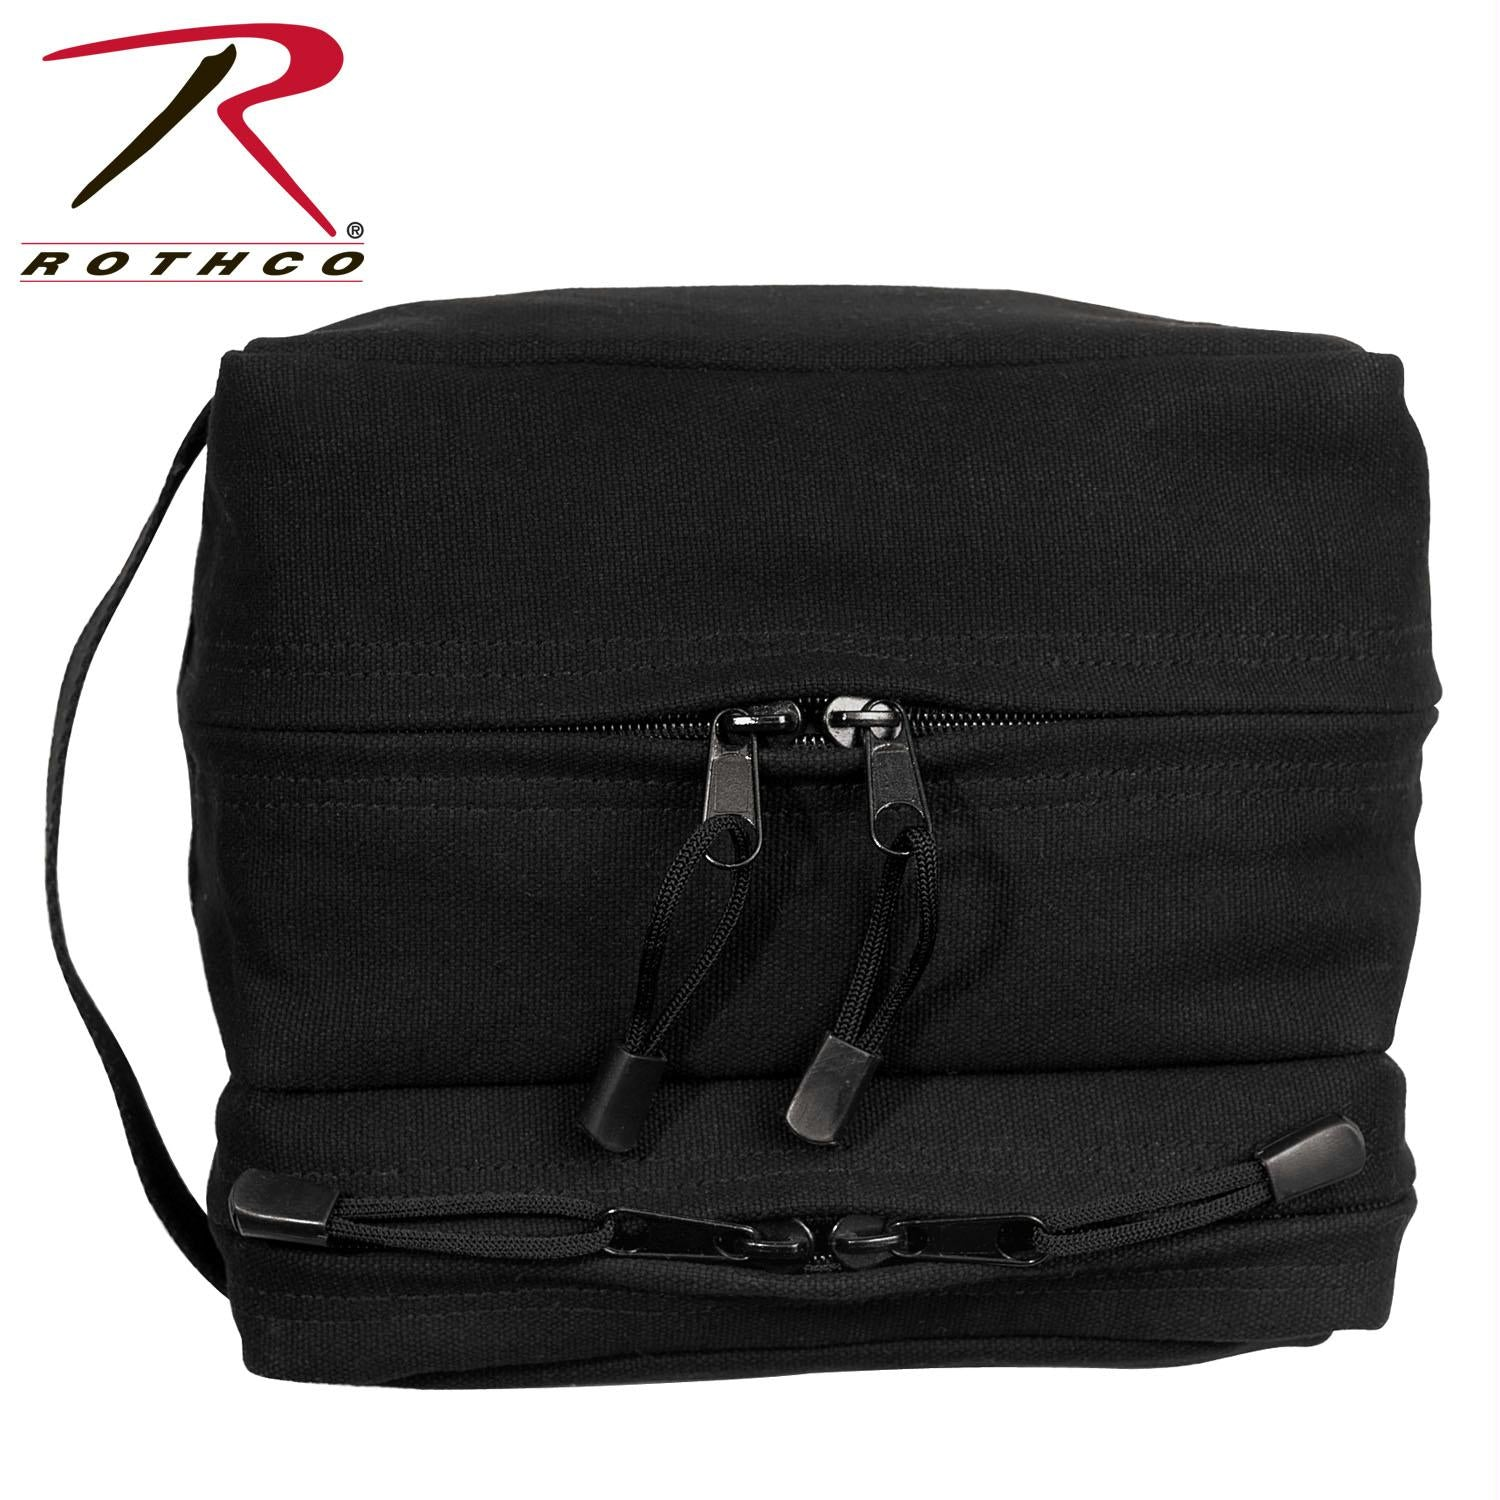 Rothco Canvas Dual Compartment Travel Kit - Black